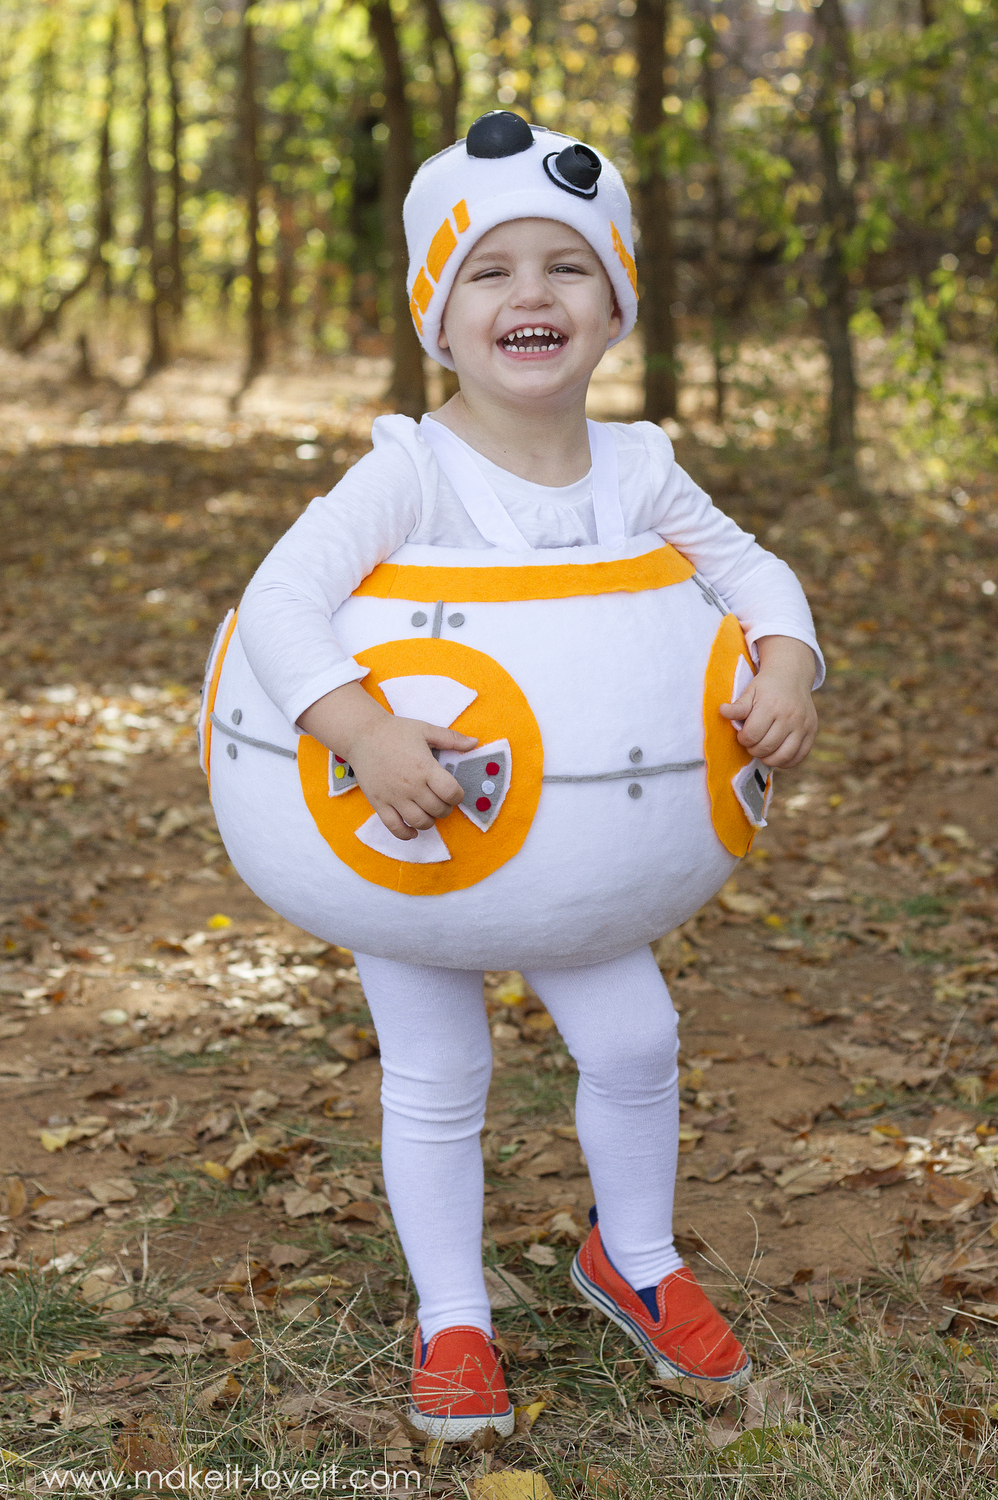 Make Star Wars Costume Love